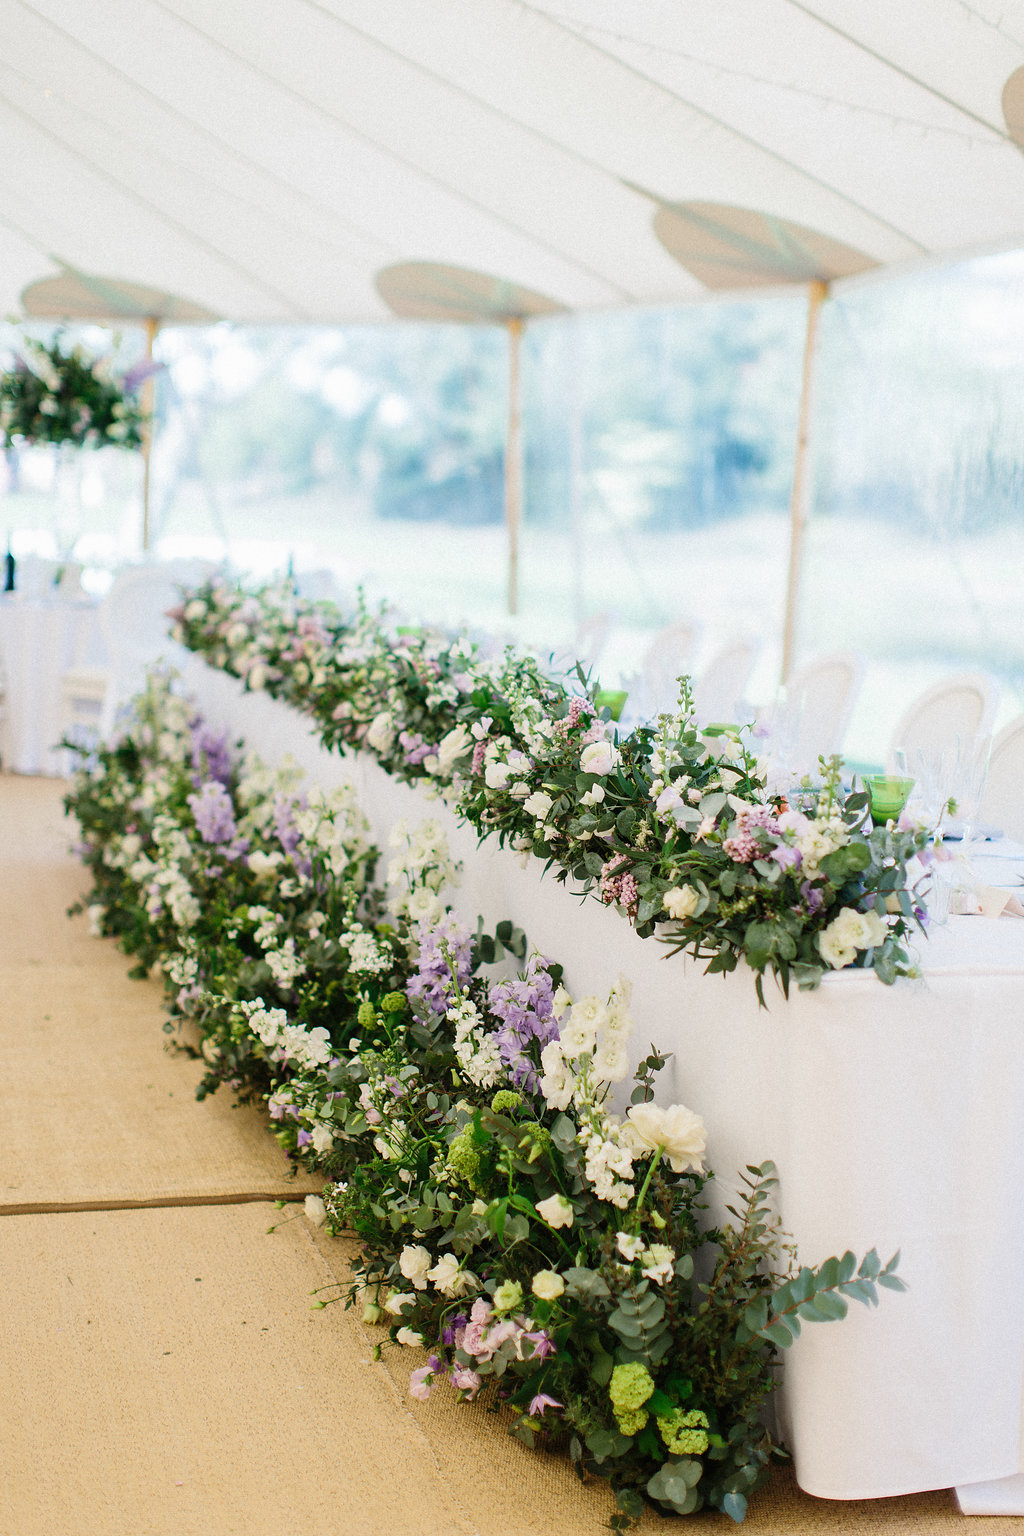 PapaKåta couple Georgina & Steve Sperry Tent Wedding in Barnby Dun, Doncaster captured by Melissa Beattie- Top table florals reused from the ceremony by Lucy MacNicoll